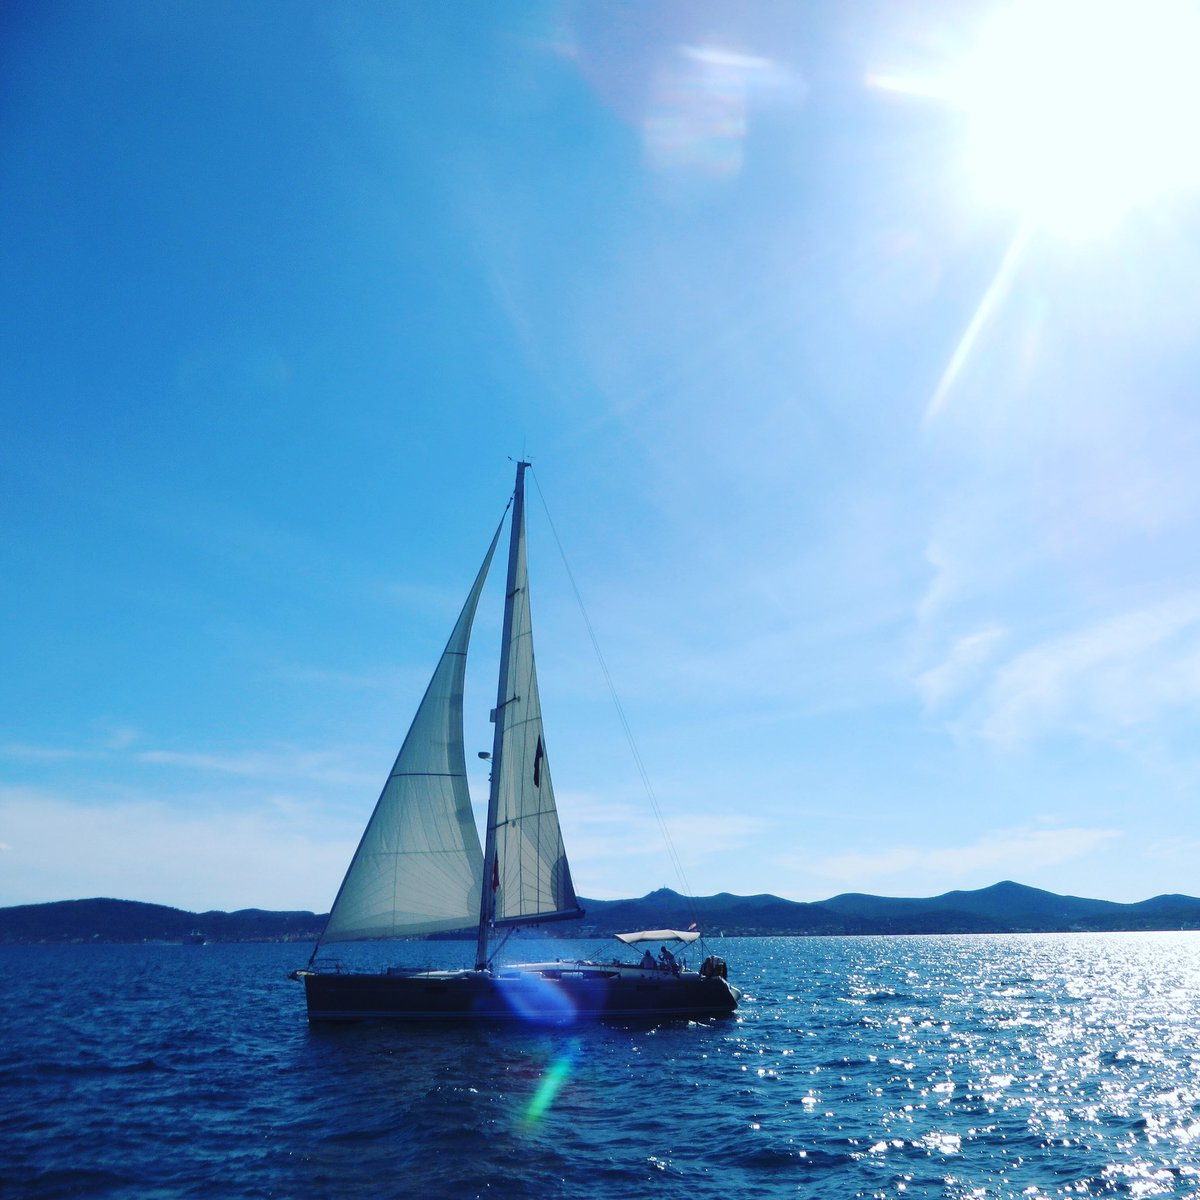 """There was nowhere to go but everywhere...""  – Jack Kerouac   #OnTheRoad #MondayMotivation #Sailing #AroundTheWorld #AdventureTravel #LuxuryTravel #Croatia #VisitCroatia #TzellTravels #TravelMatters #croatiafulloflife #ionlytravelwithCIREpic.twitter.com/nOL32BfkUA"